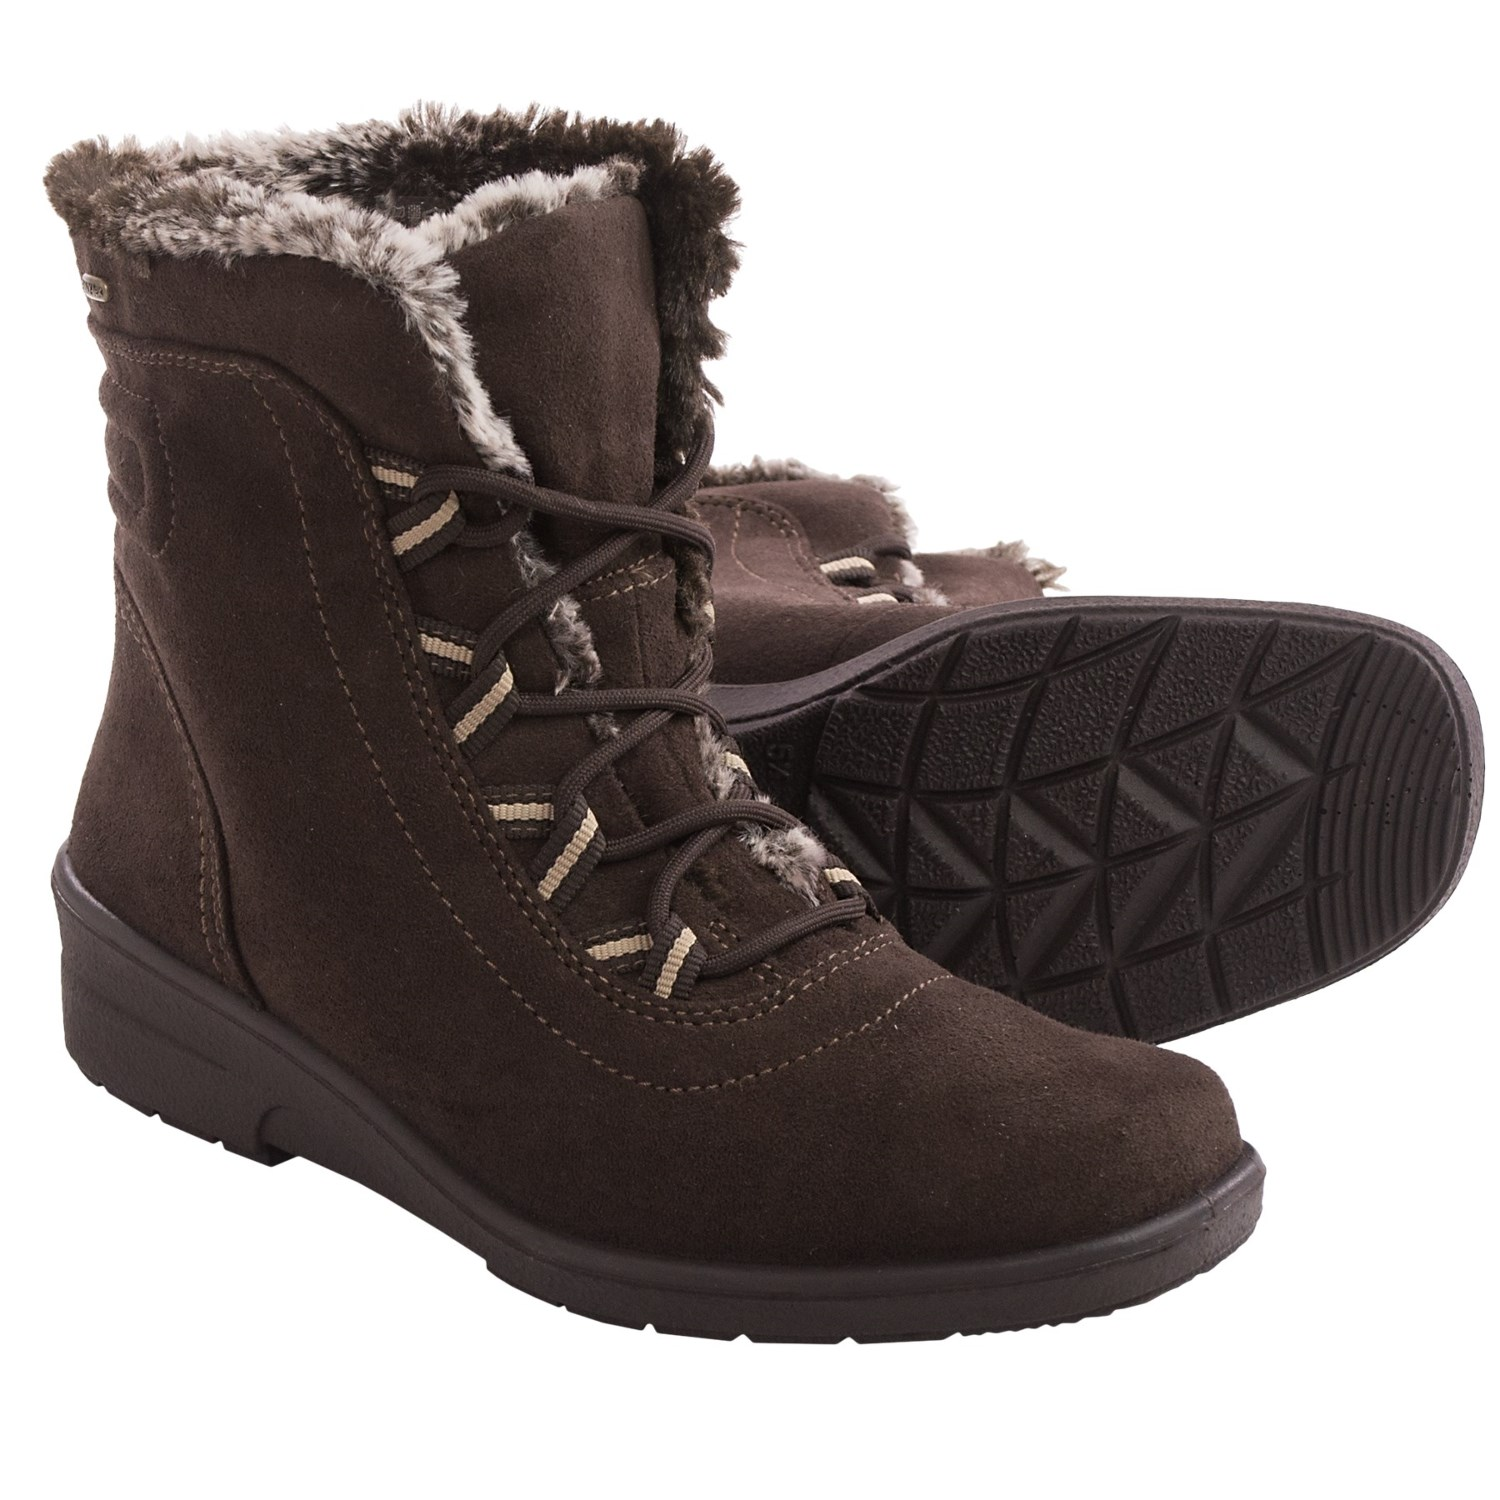 Jenny Munchen Snow Boots For Women Save 83